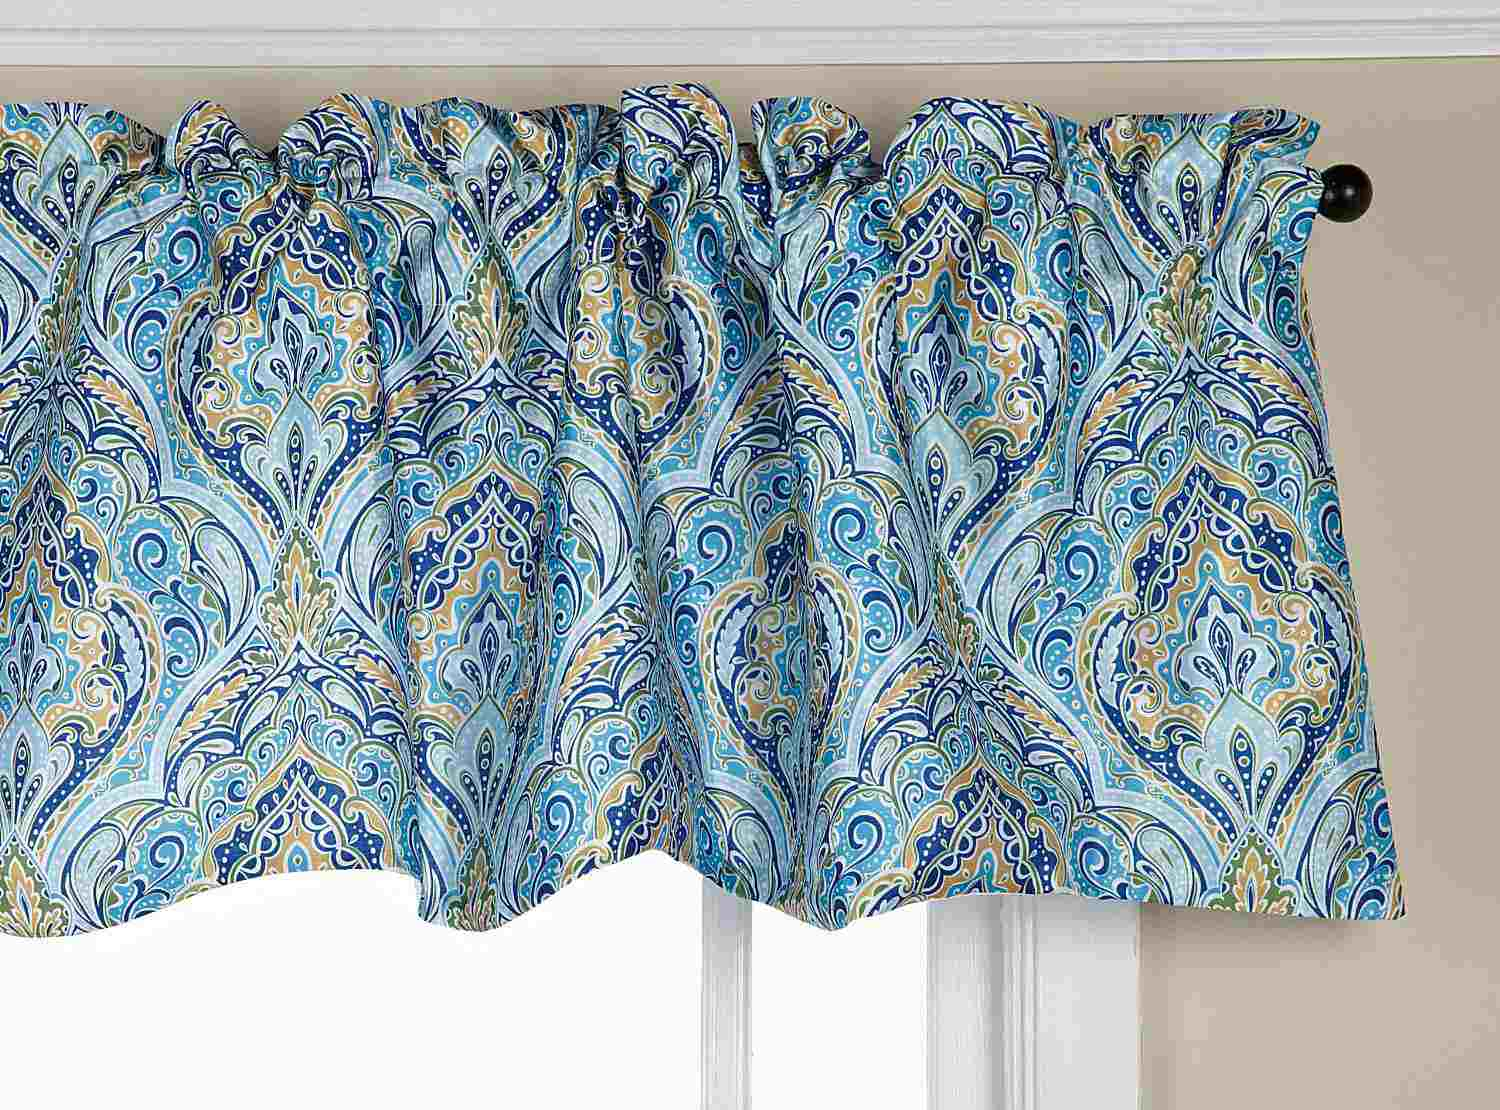 Blue paisley window valance mounted on window.